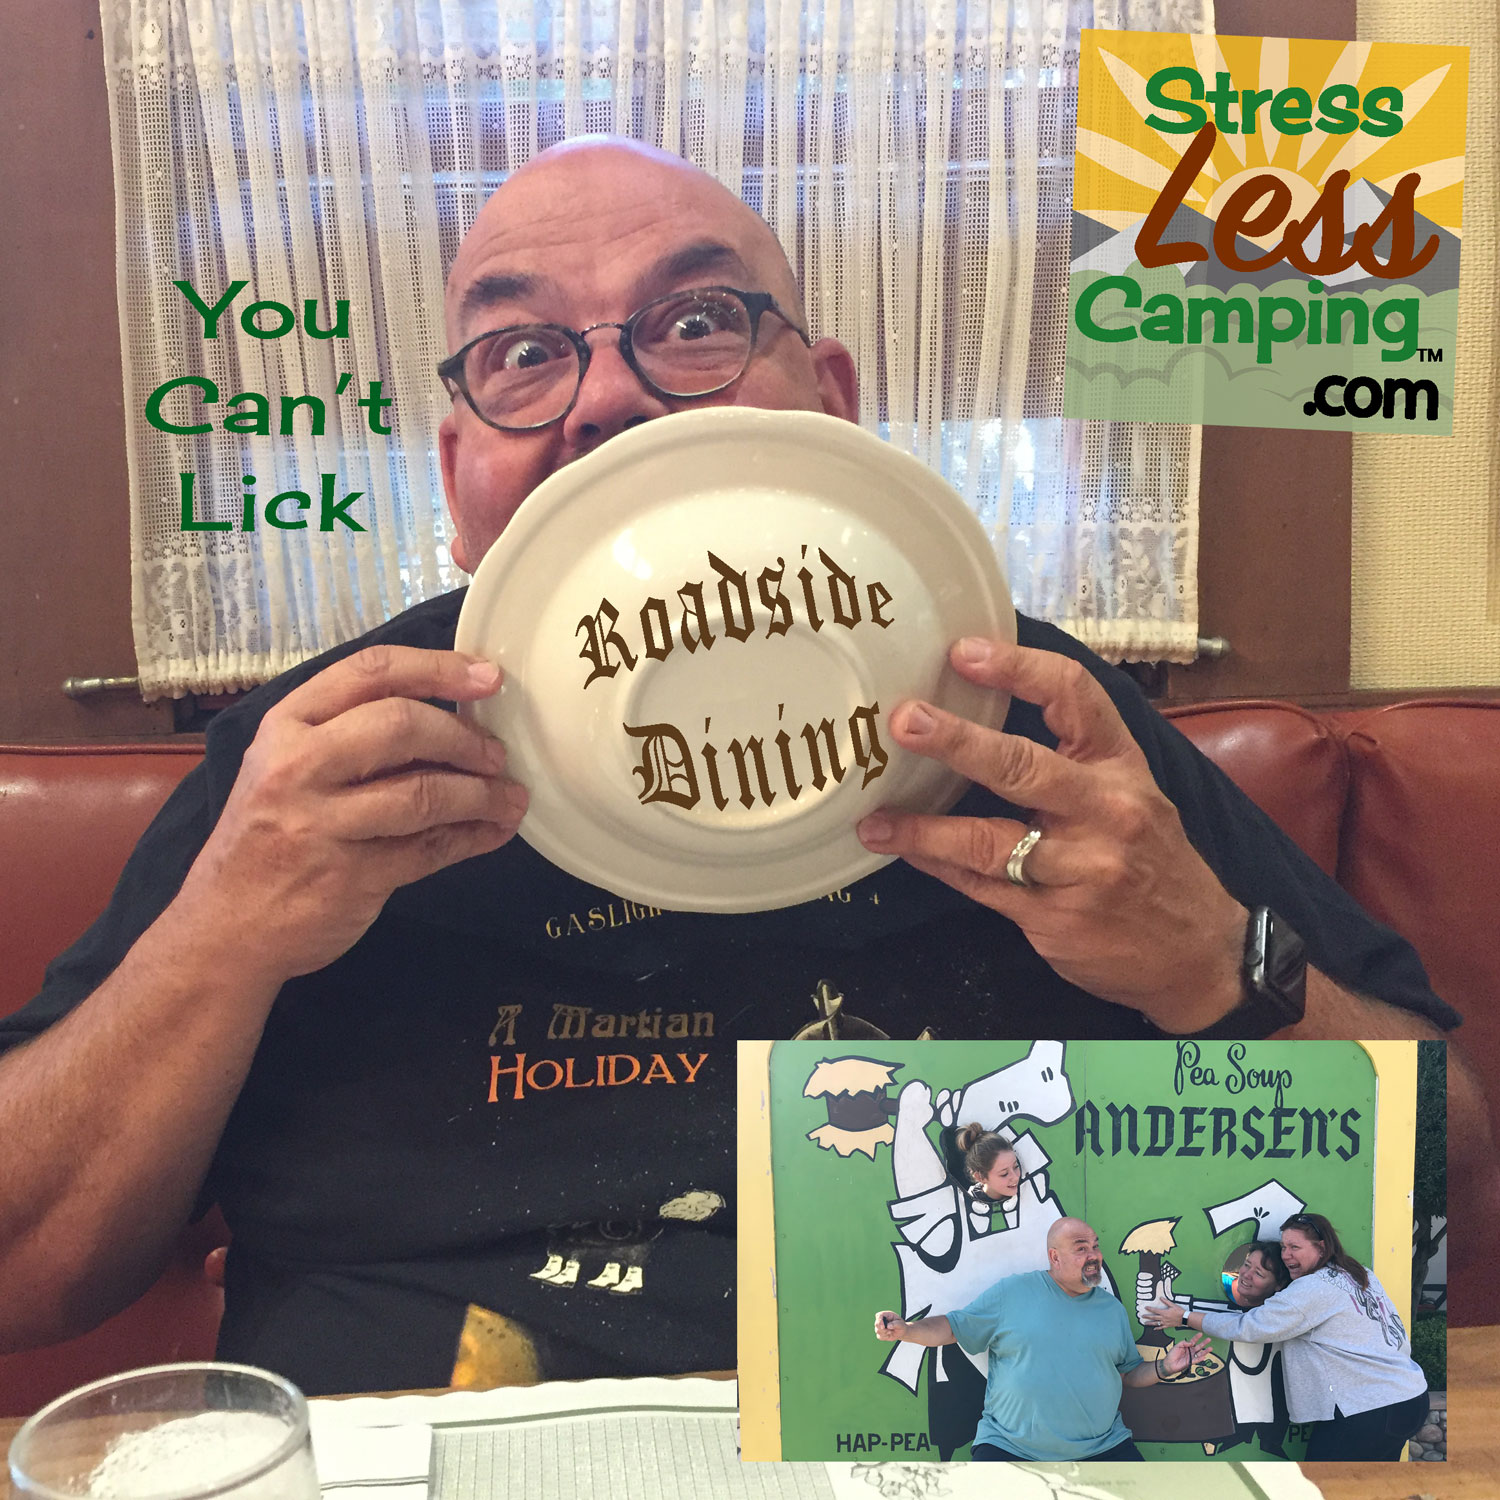 Tony proves that you can't lick Andersen's famous pea soup.